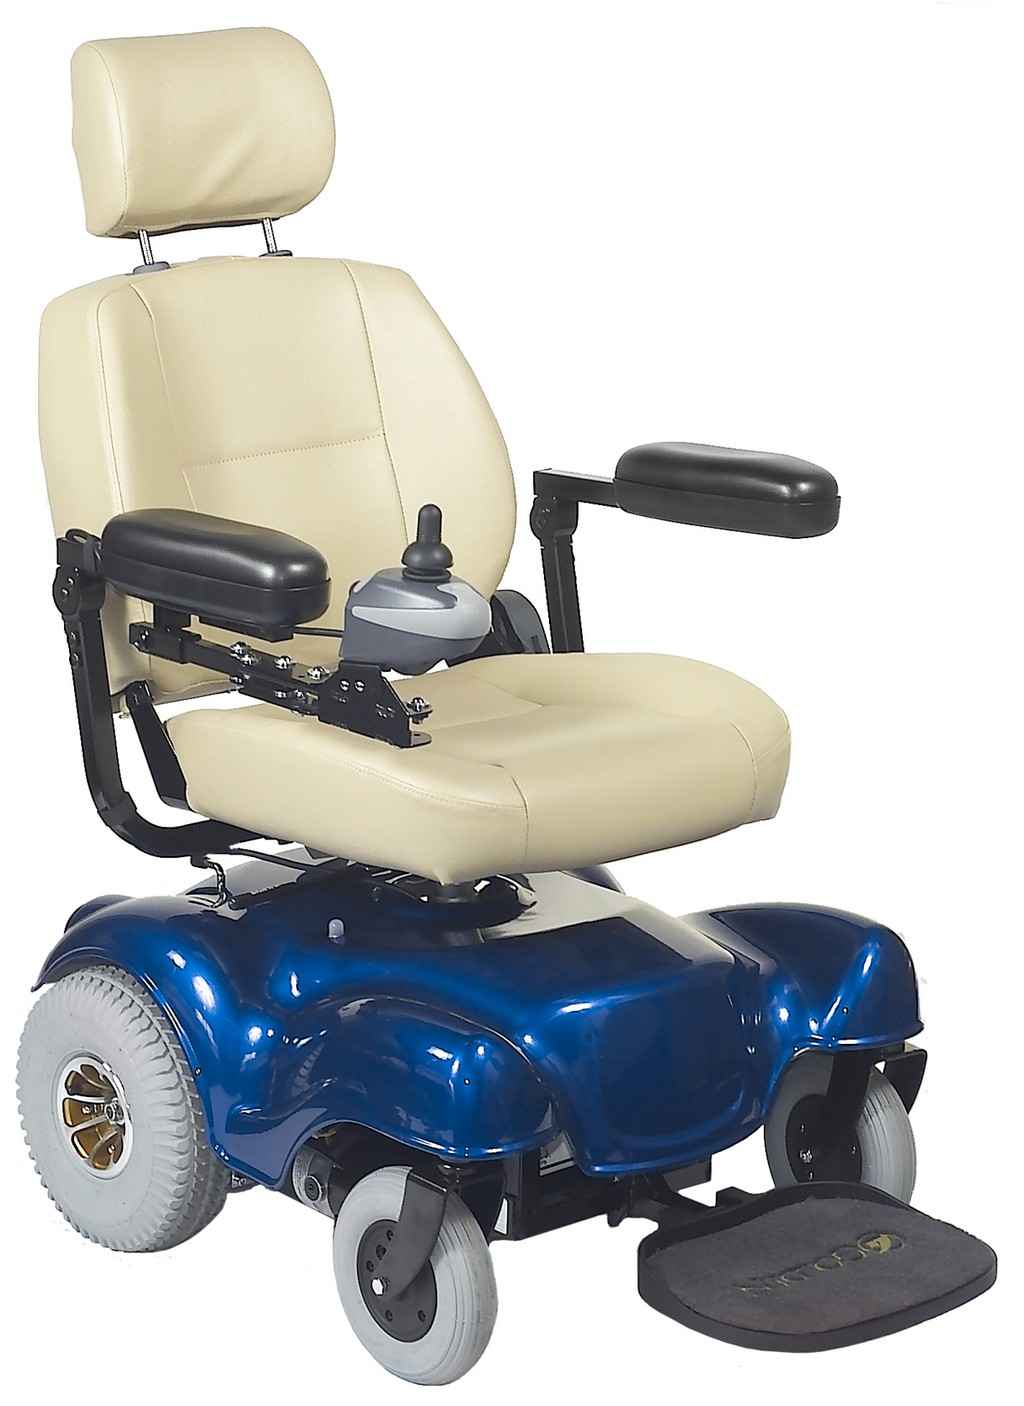 used electric wheelchairs for disabled, used electric wheel chair, used electric wheel chair in jackson ms, permoble chairman entra electric wheelchair